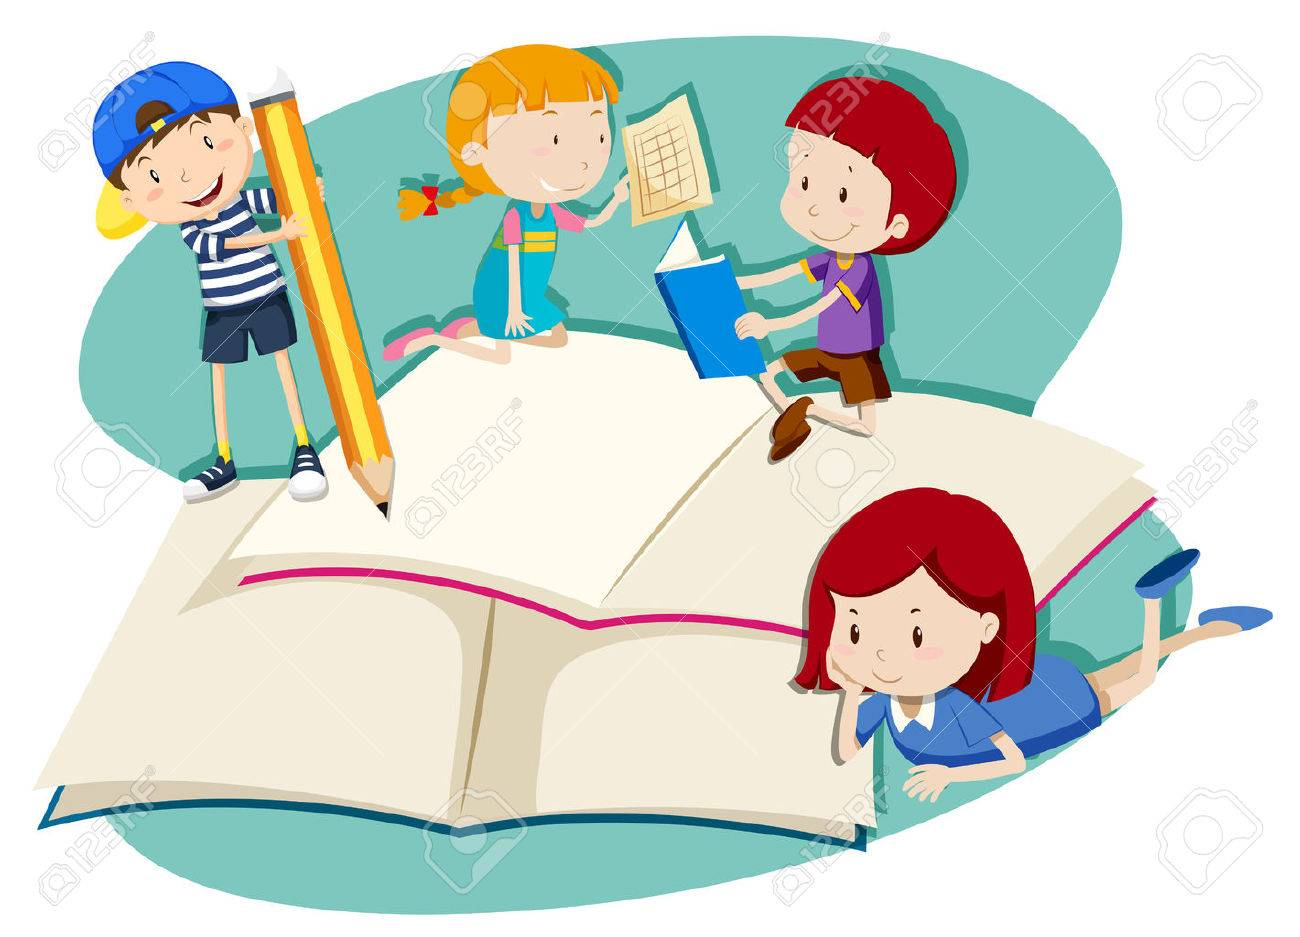 children writing and reading illustration royalty free cliparts